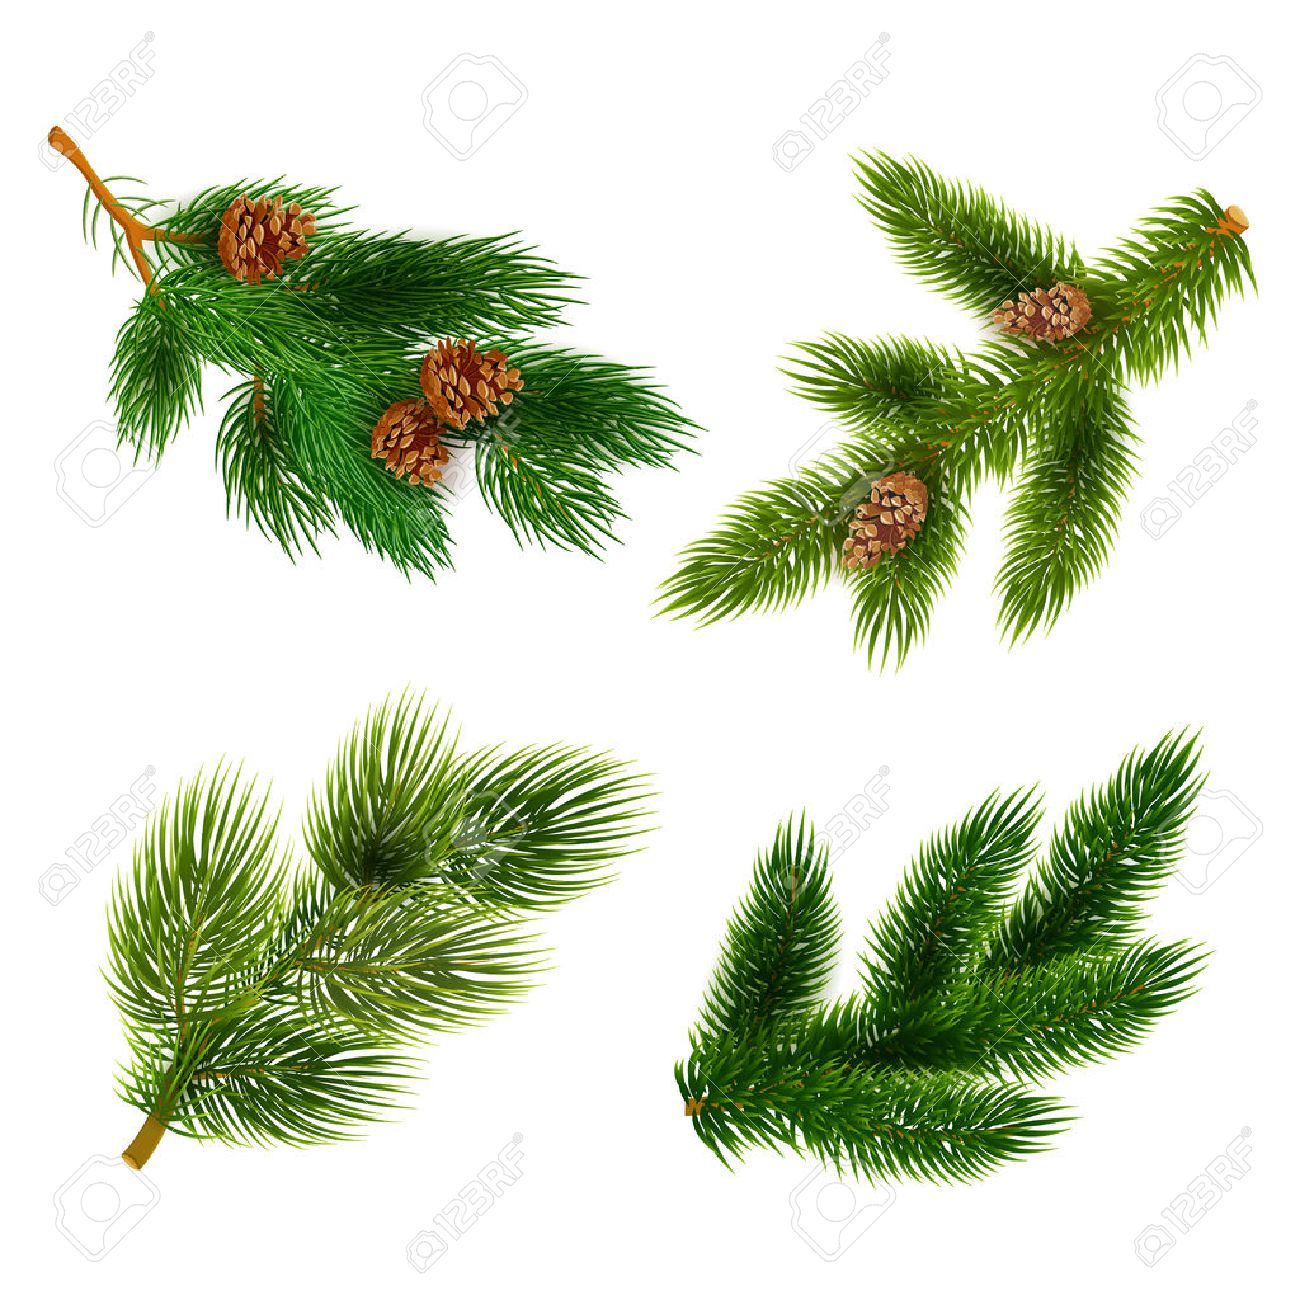 Pine tree branches with cones for chrismas decorations 4 icons set composition banner realistic abstract vector illustration - 45805683